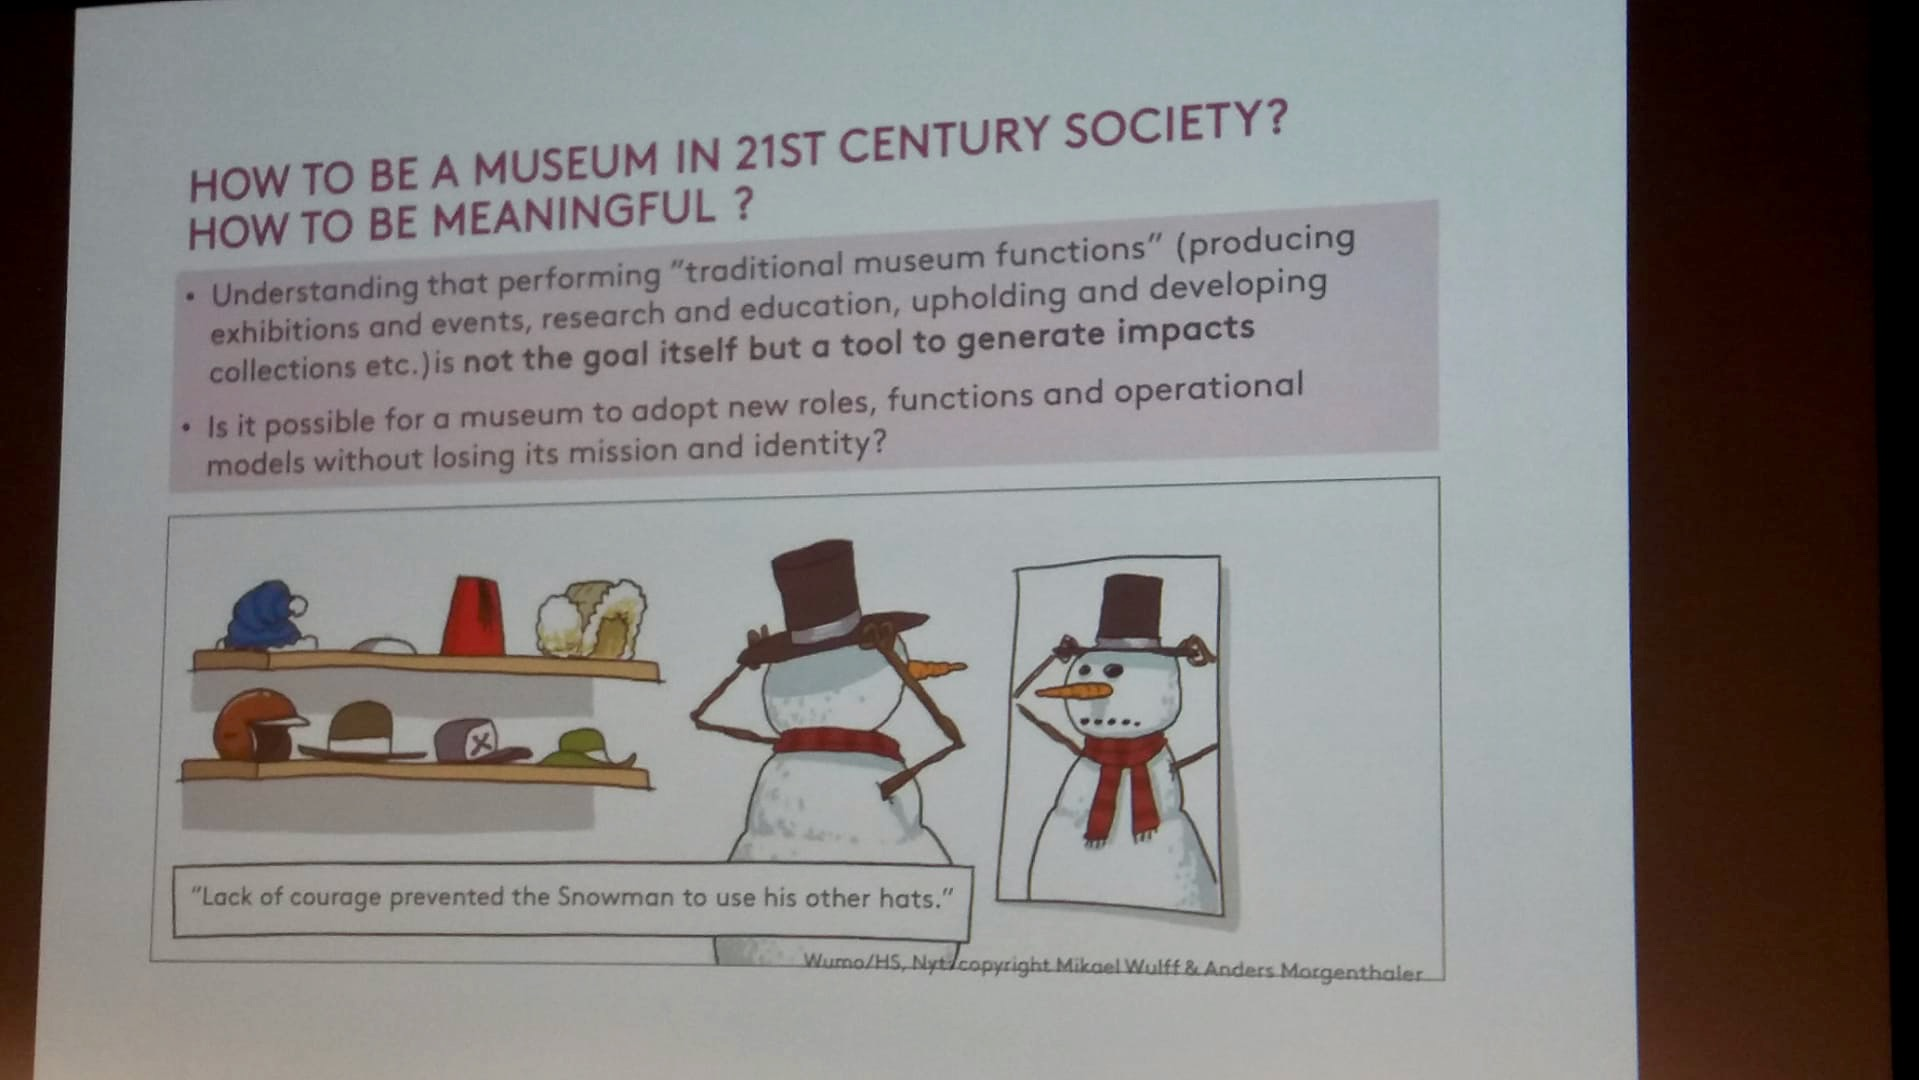 Na imagem aparecem as seguintes perguntas: How to be a museum in 21st century society? How to be meaningful?